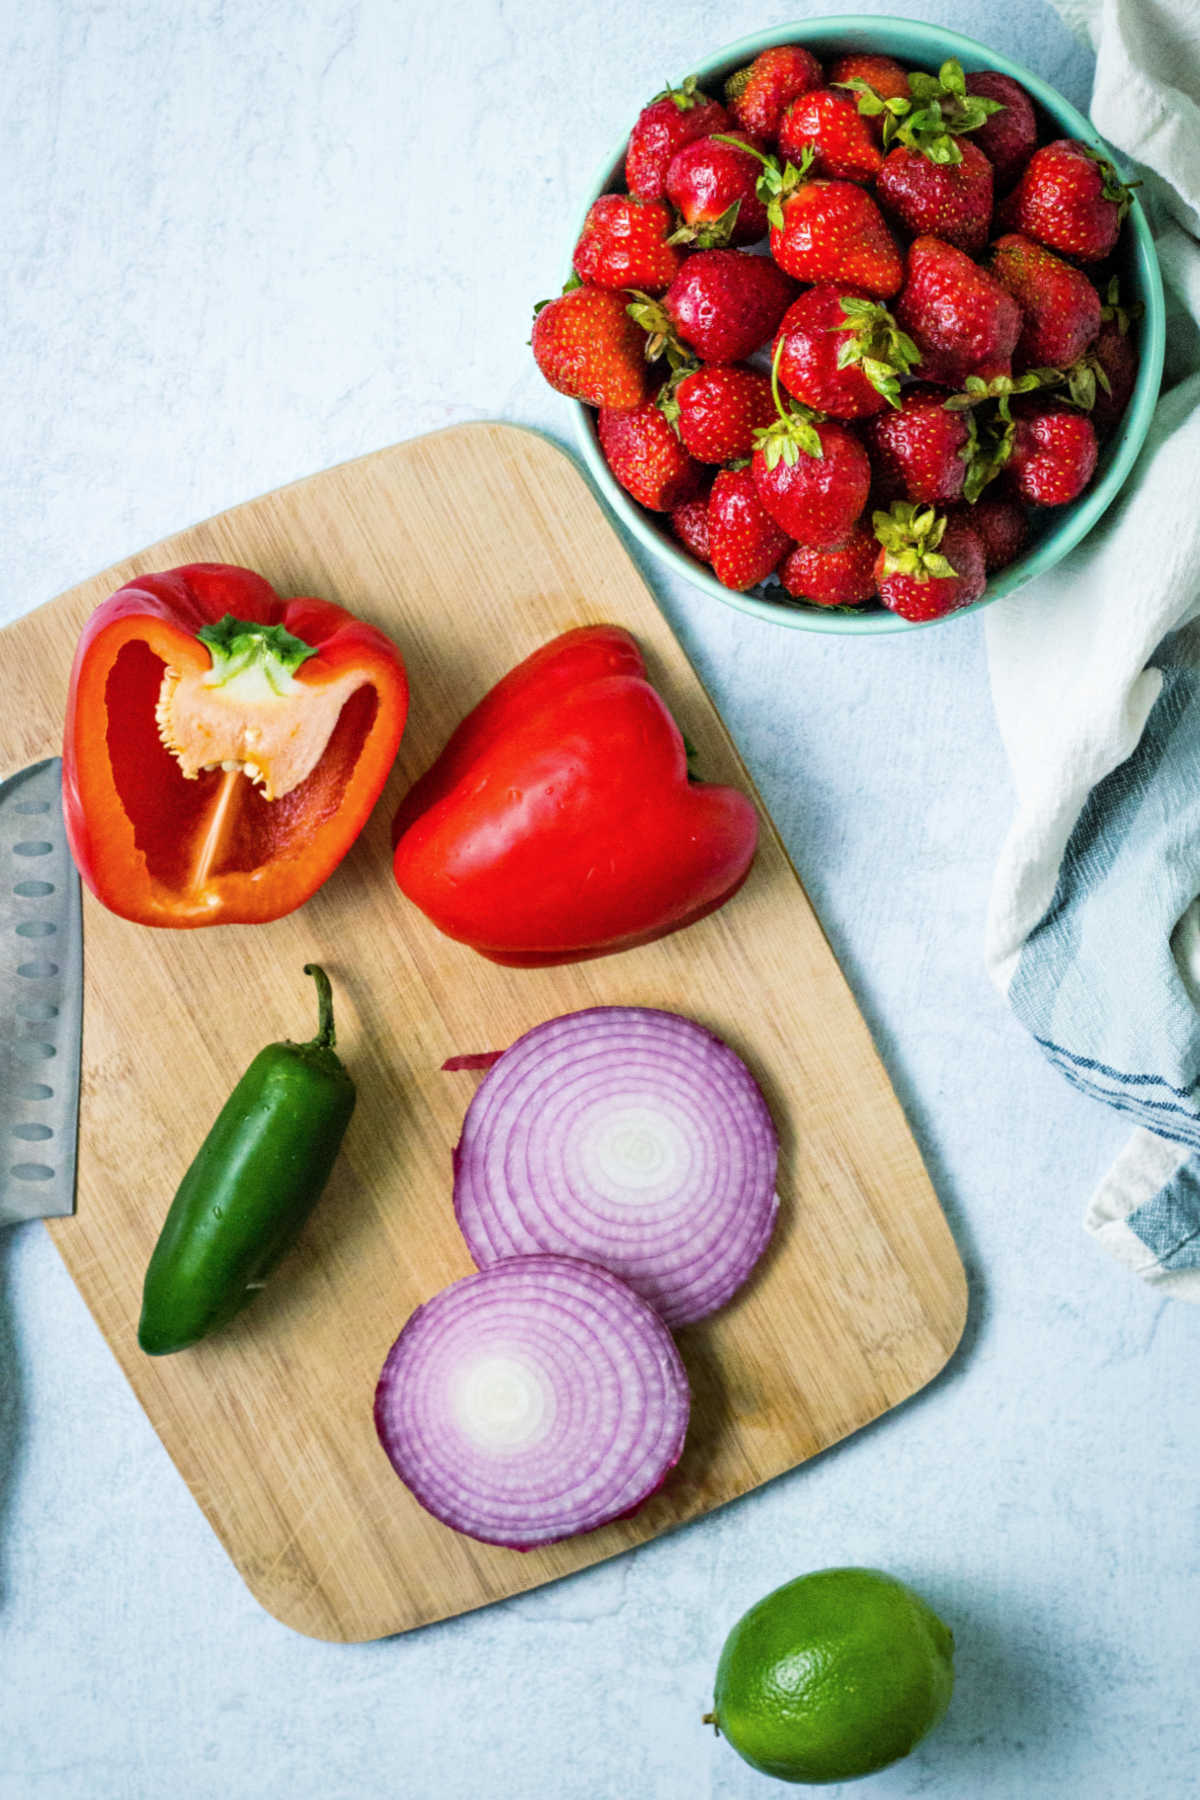 ingredients for strawberry salsa on a counter: a bowl of strawberries, red bell pepper, jalapeno, red onion slices, and a lime.